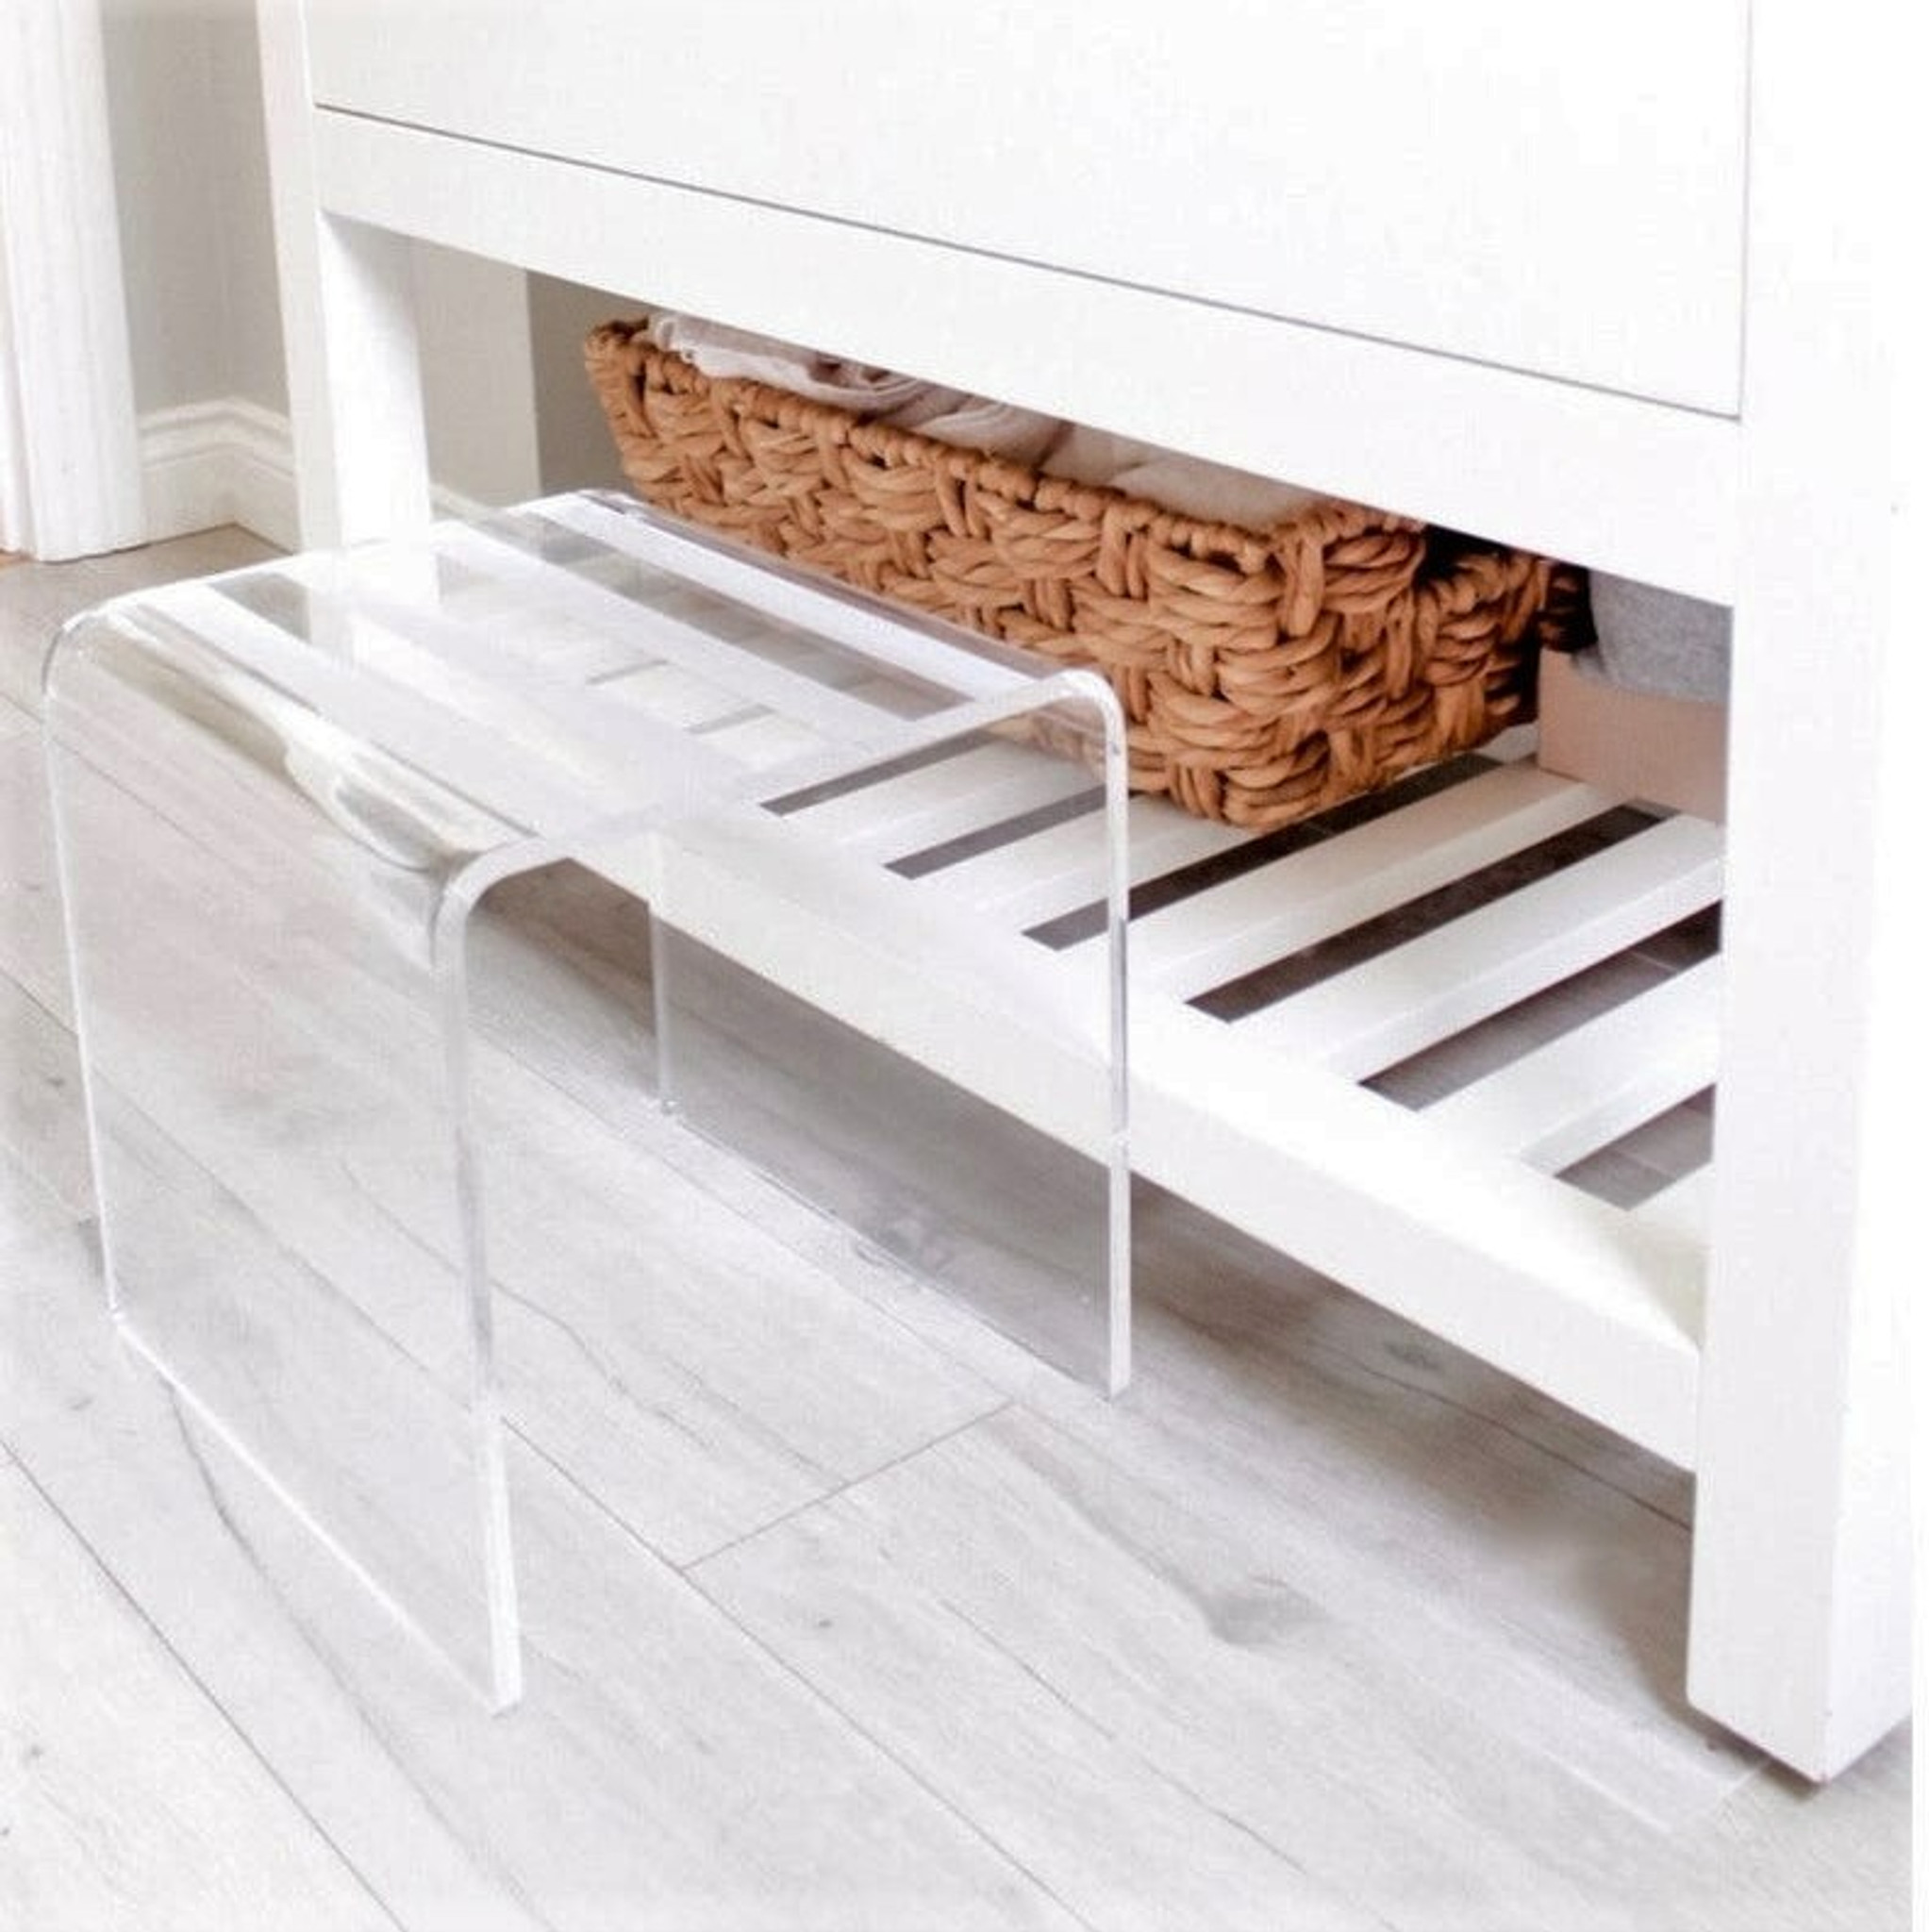 Clear Lucite Kid's Step Stool & Seat